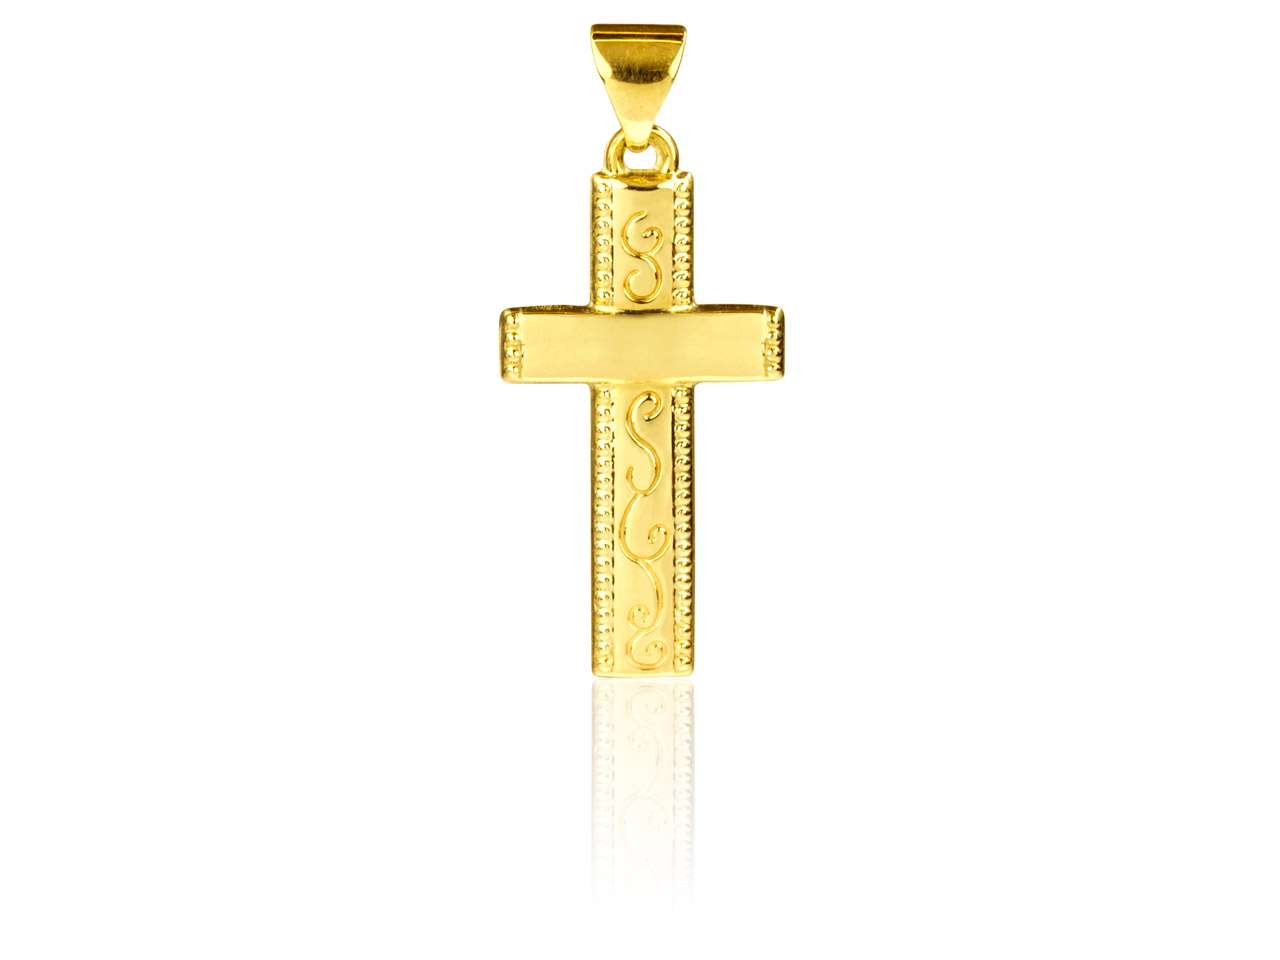 9ct Yellow Cross Pendant Embossed  With Scrolls 23mm X 11.5mm Machine Engravable